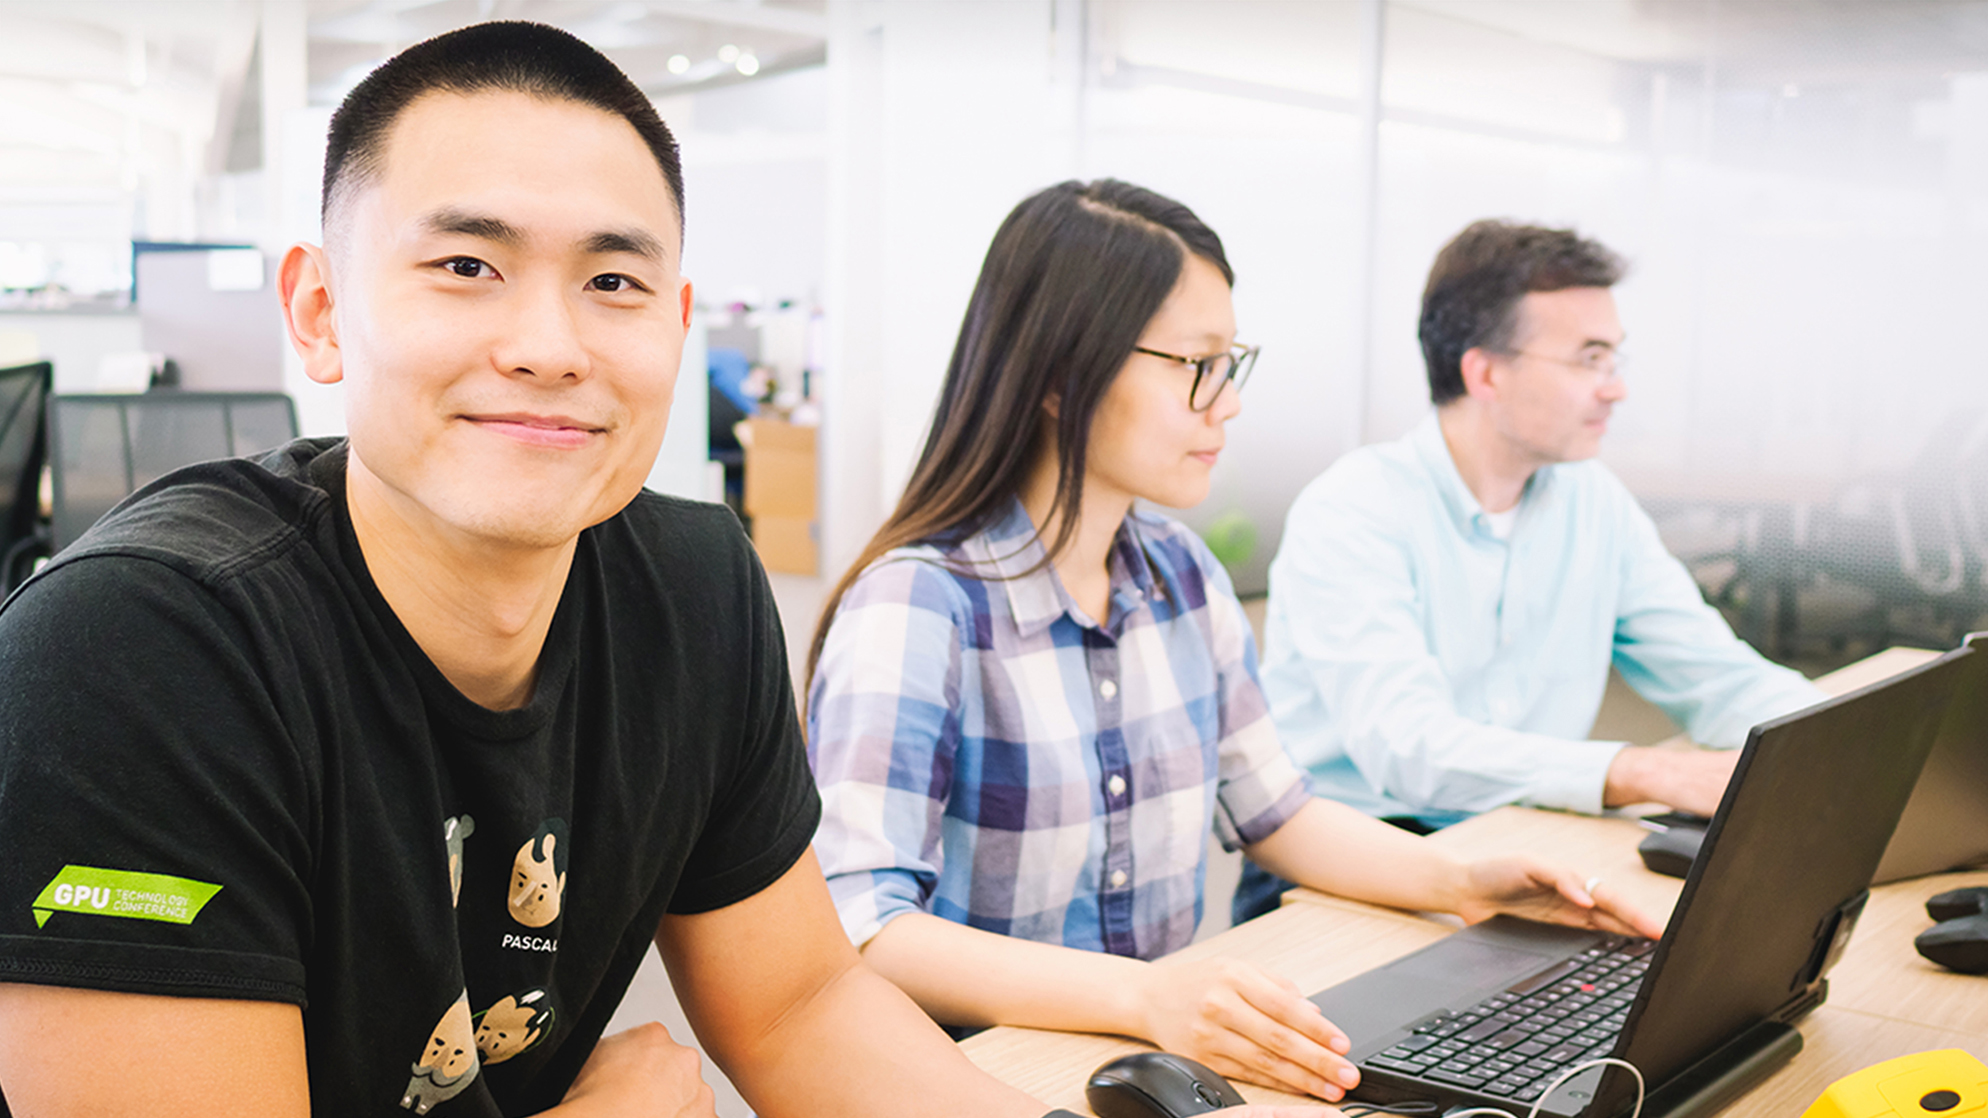 Internships, University Recruiting, and Roles for New Grads